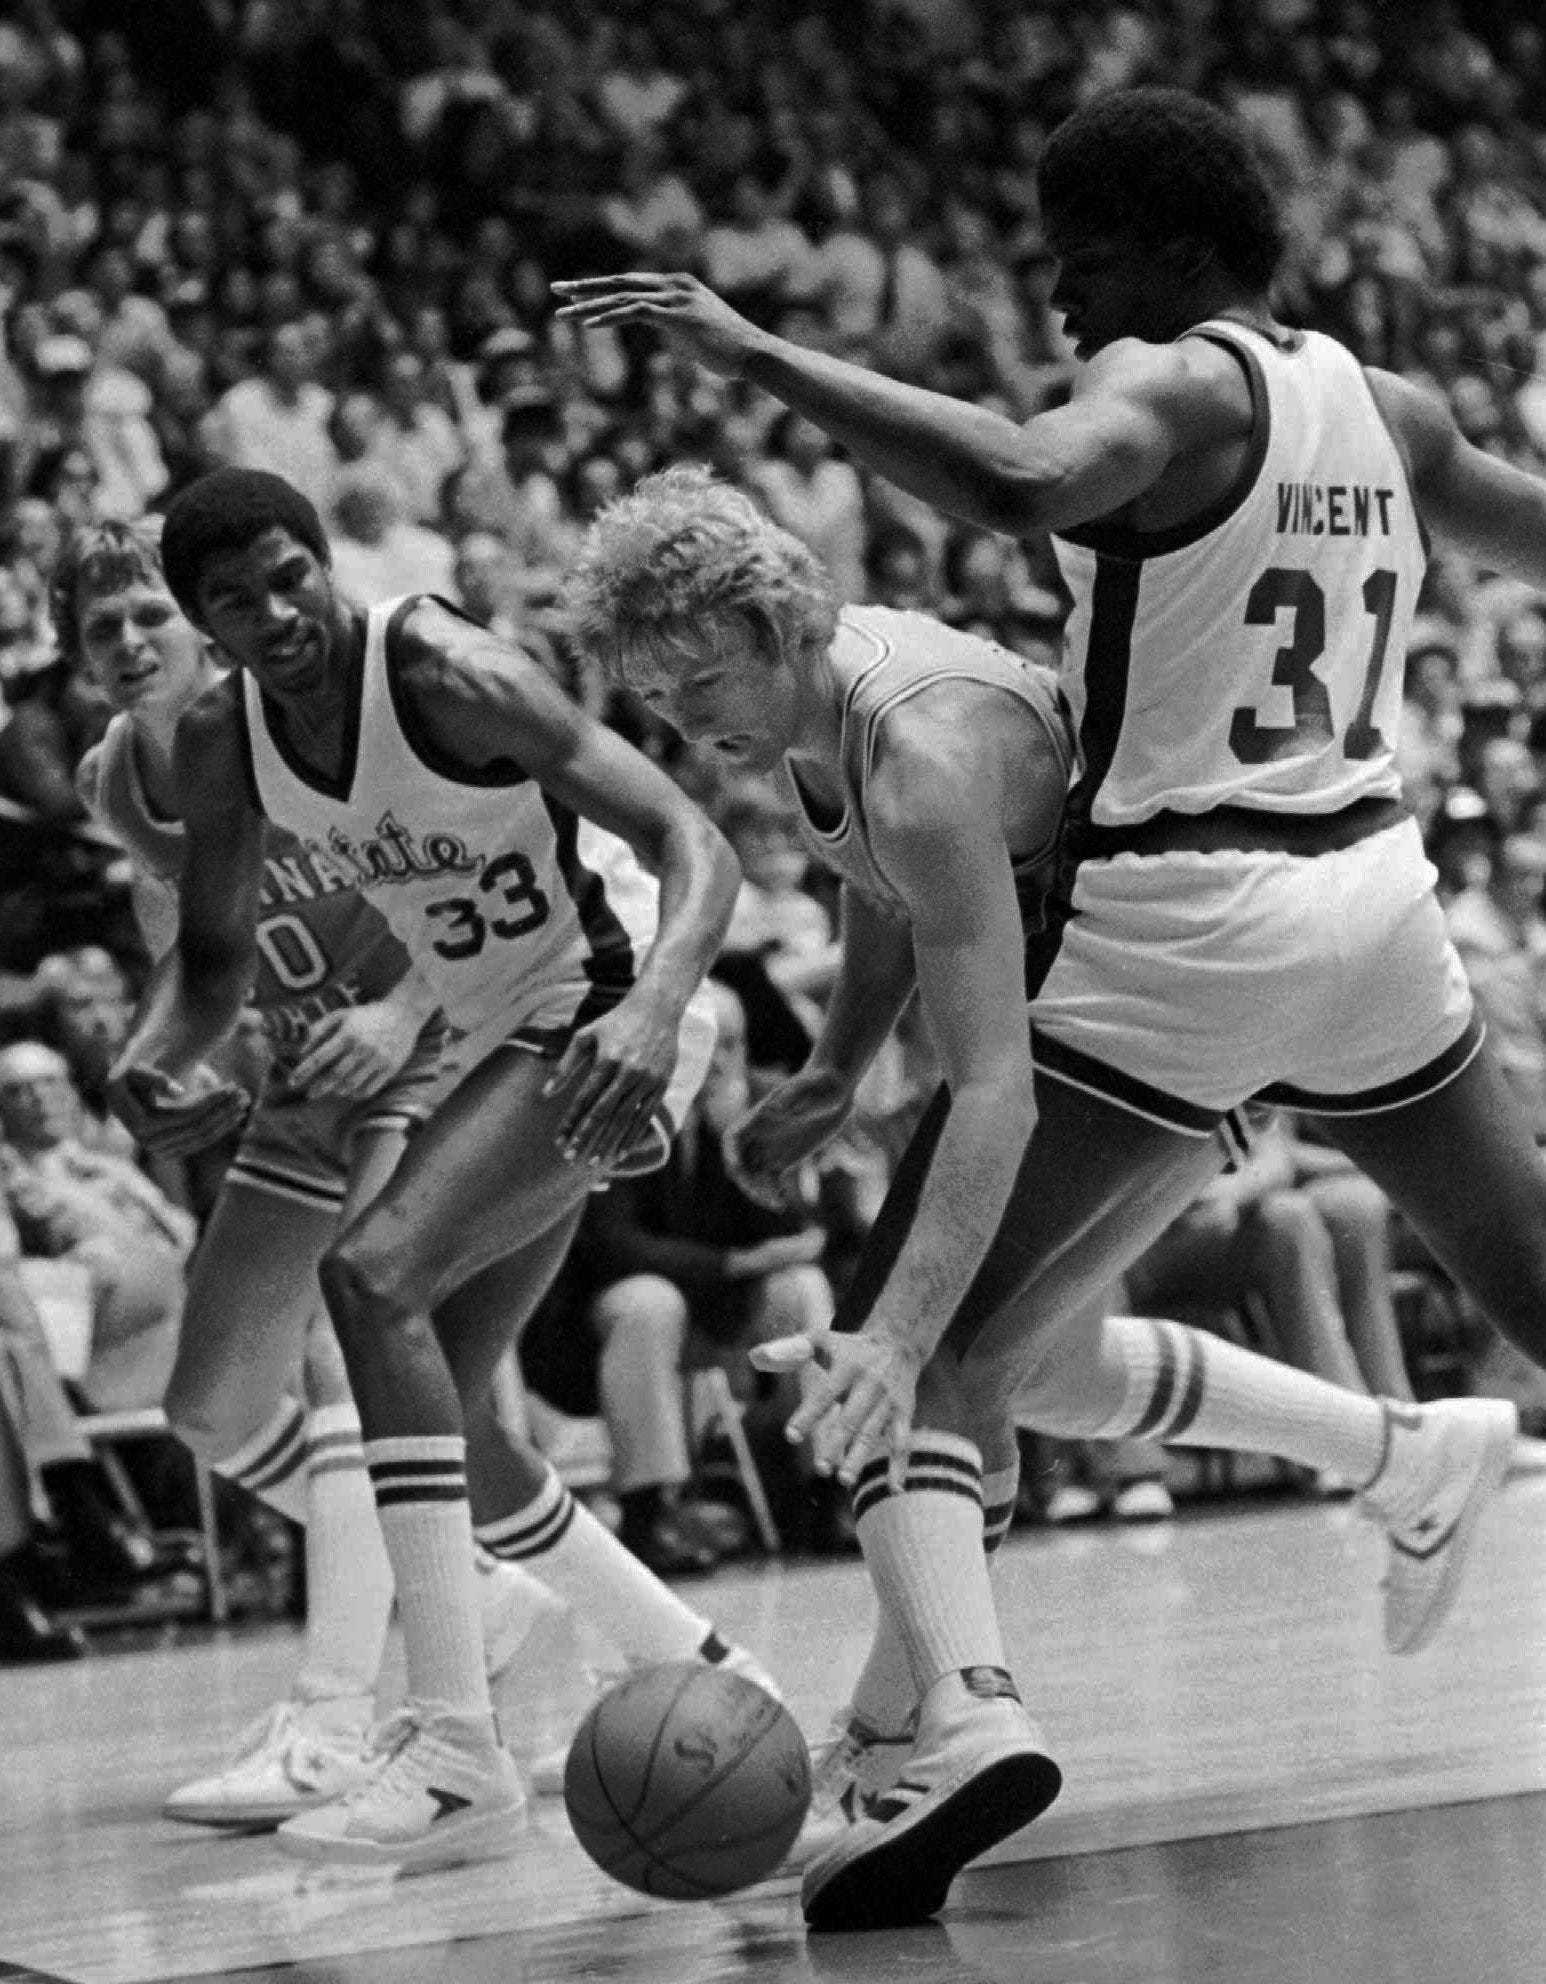 Michigan State's Jay Vincent (31) and Earvin Johnson apply pressure as Indiana State's Larry Bird looks for help during their NCAA championship game in 1979.